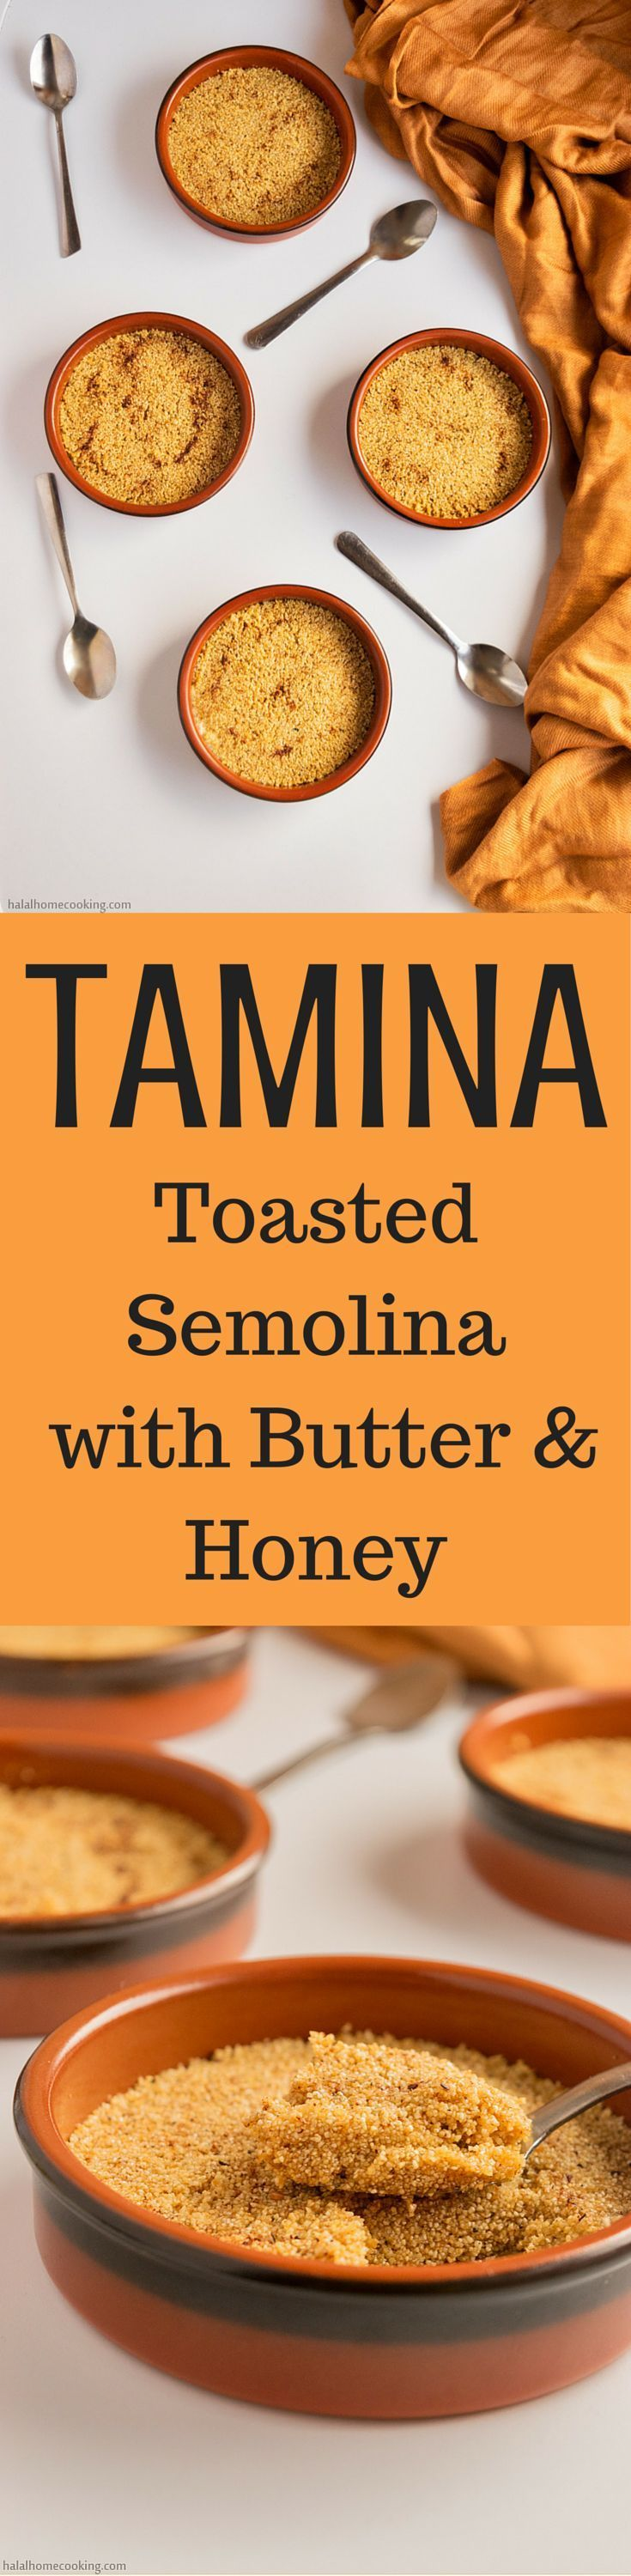 Tamina - Toasted Semolina with Butter & Honey